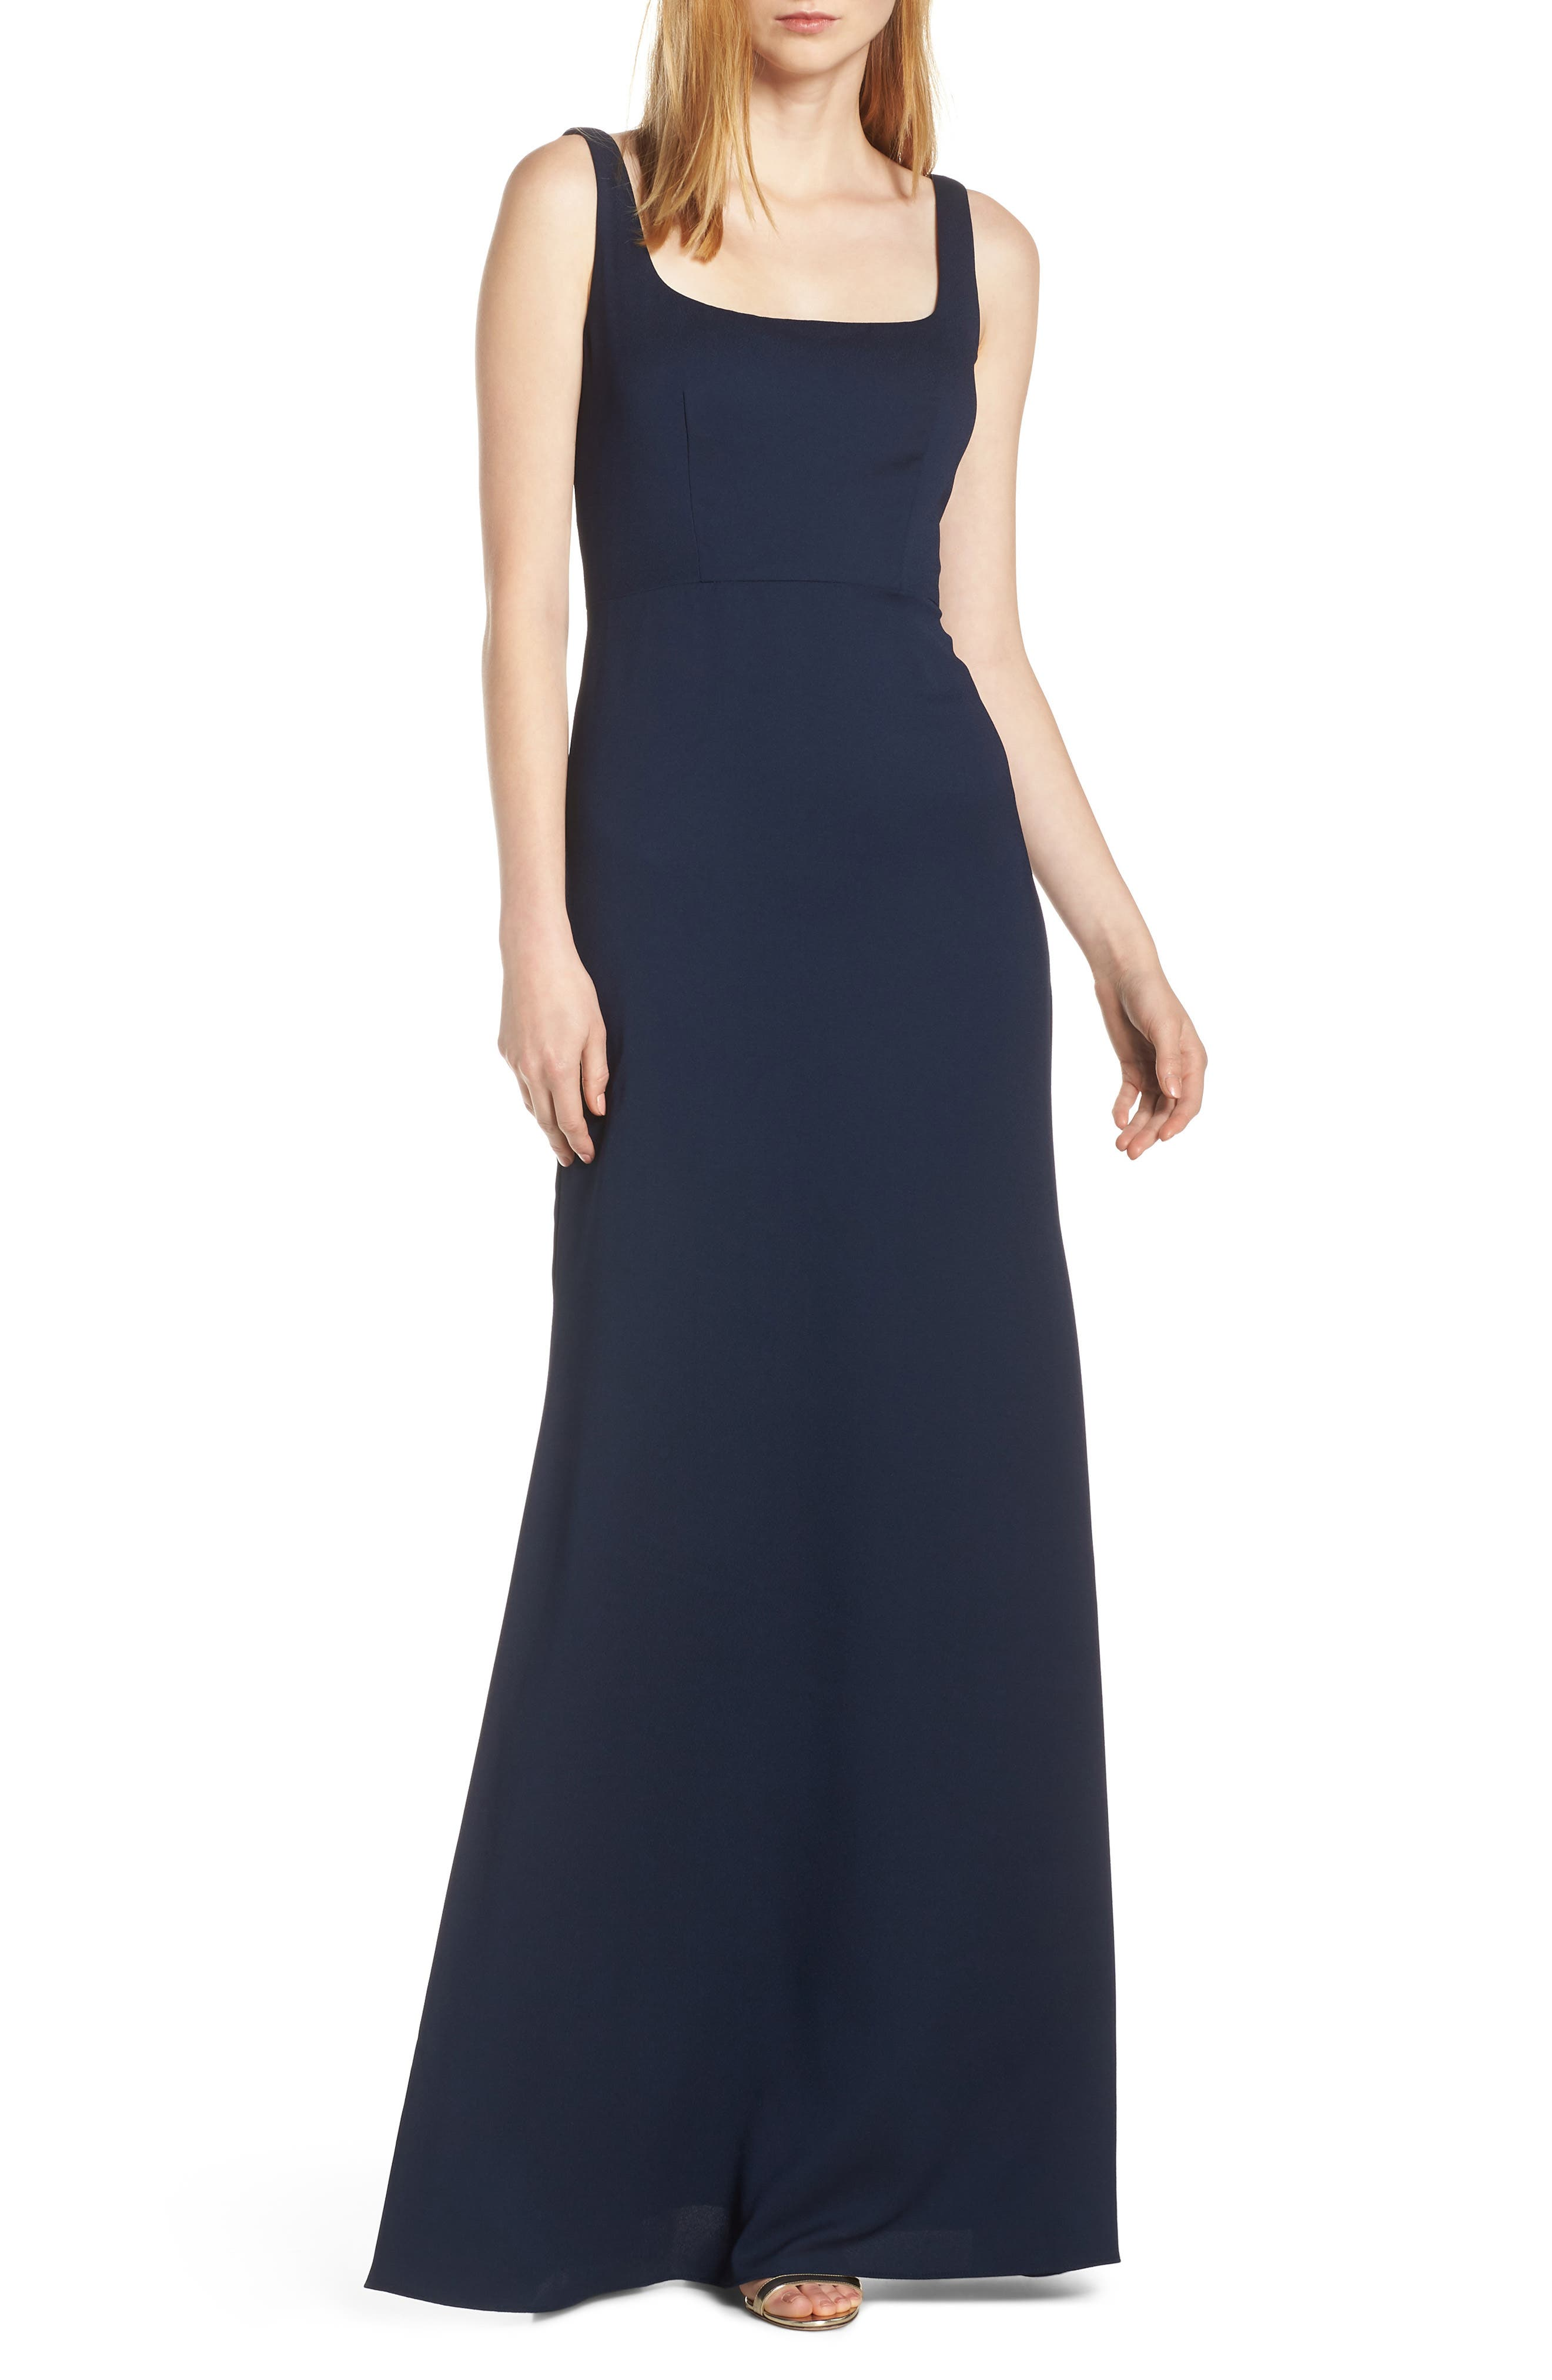 Hayley Paige Occasions Square Neck Tie Back Crepe Evening Dress, Blue